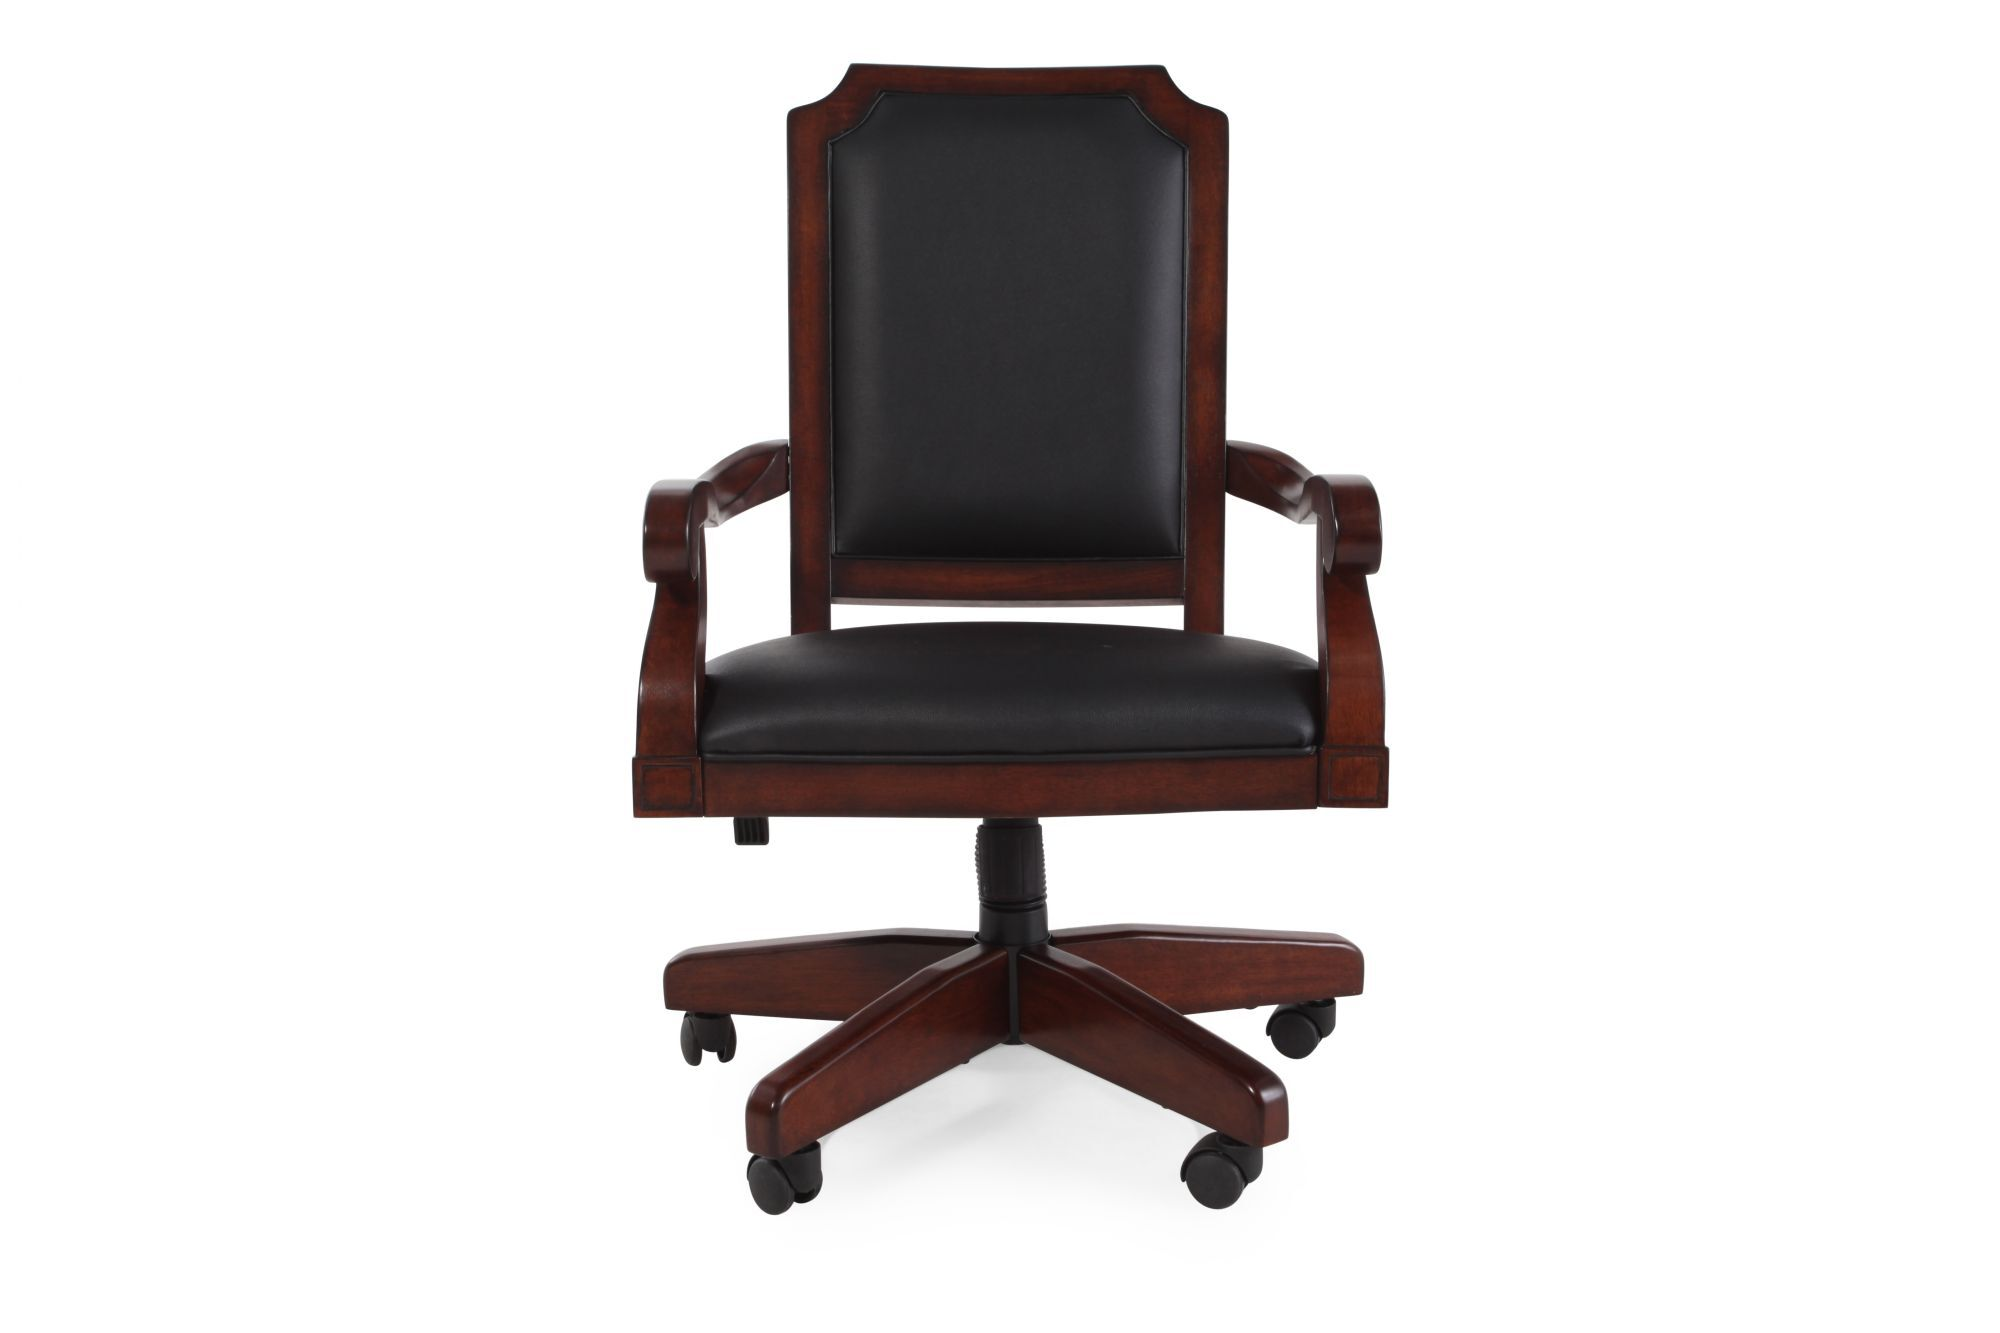 Images Casters Swivel Office Chairu0026nbsp;in Dark Cherry Casters Swivel Office  Chairu0026nbsp;in Dark Cherry